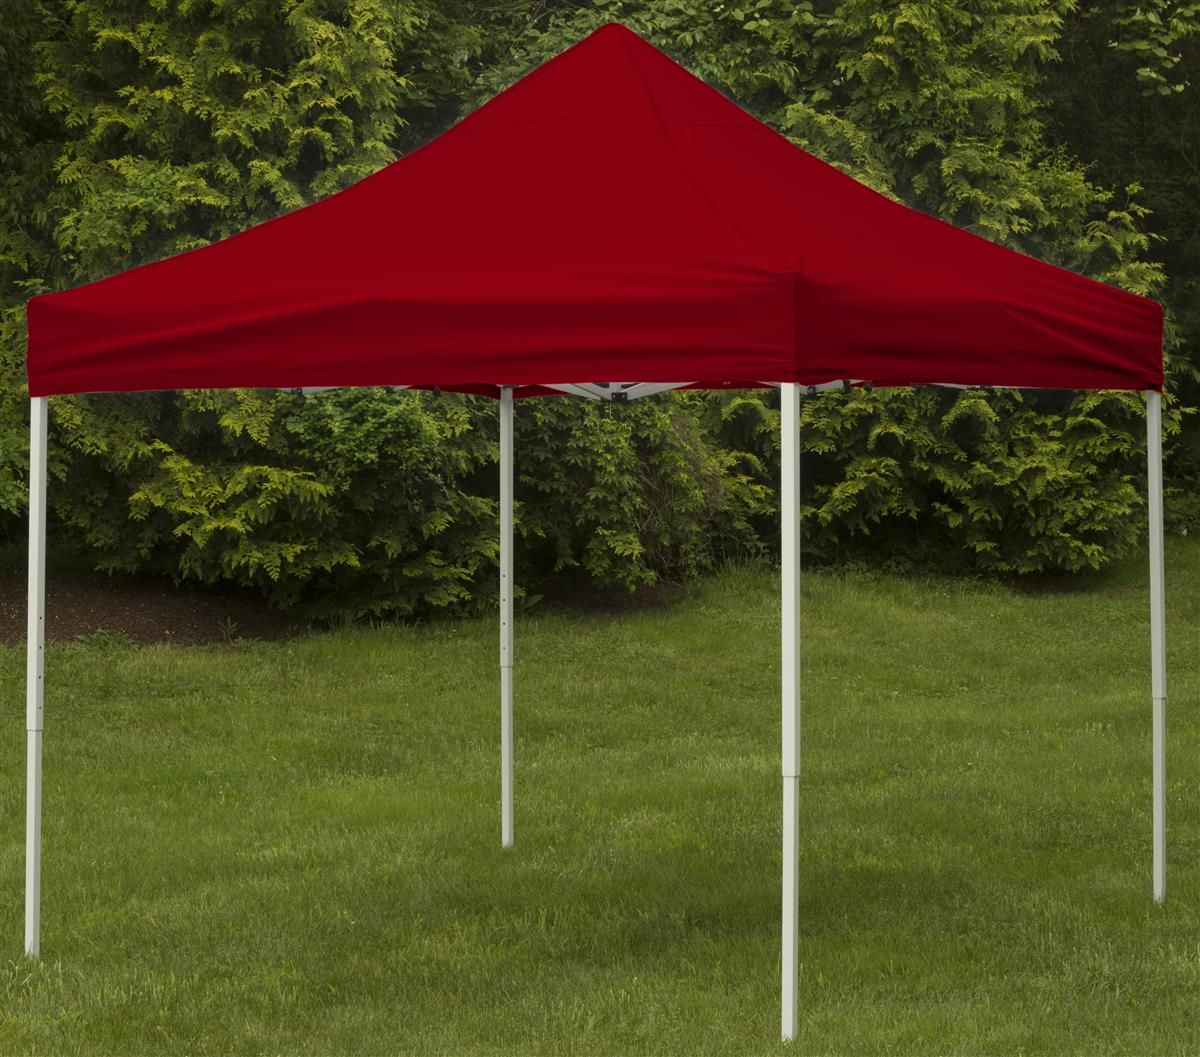 10 X 10 Outdoor Canopy Tent Pop Up Portable Square Red Canopy Tent Outdoor Canopy Outdoor Canopy Tent